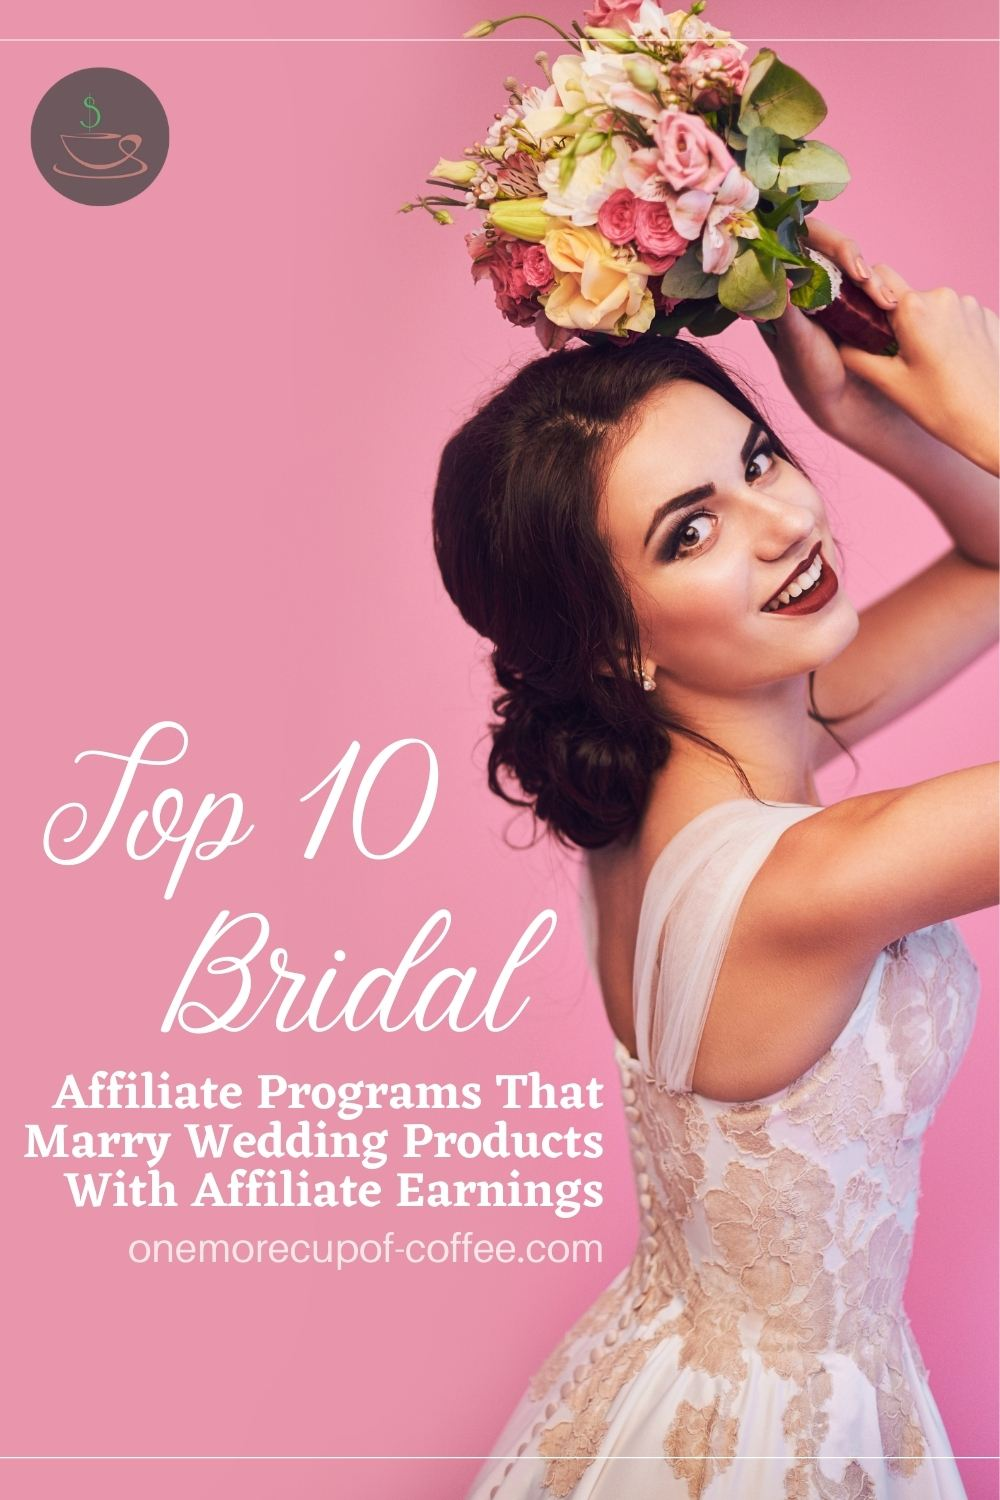 """a smiling bride's side profile holding a colorful bouquet flowers, with pink background and text overlay """"Top 10 Bridal Affiliate Programs That Marry Wedding Products With Affiliate Earnings"""""""